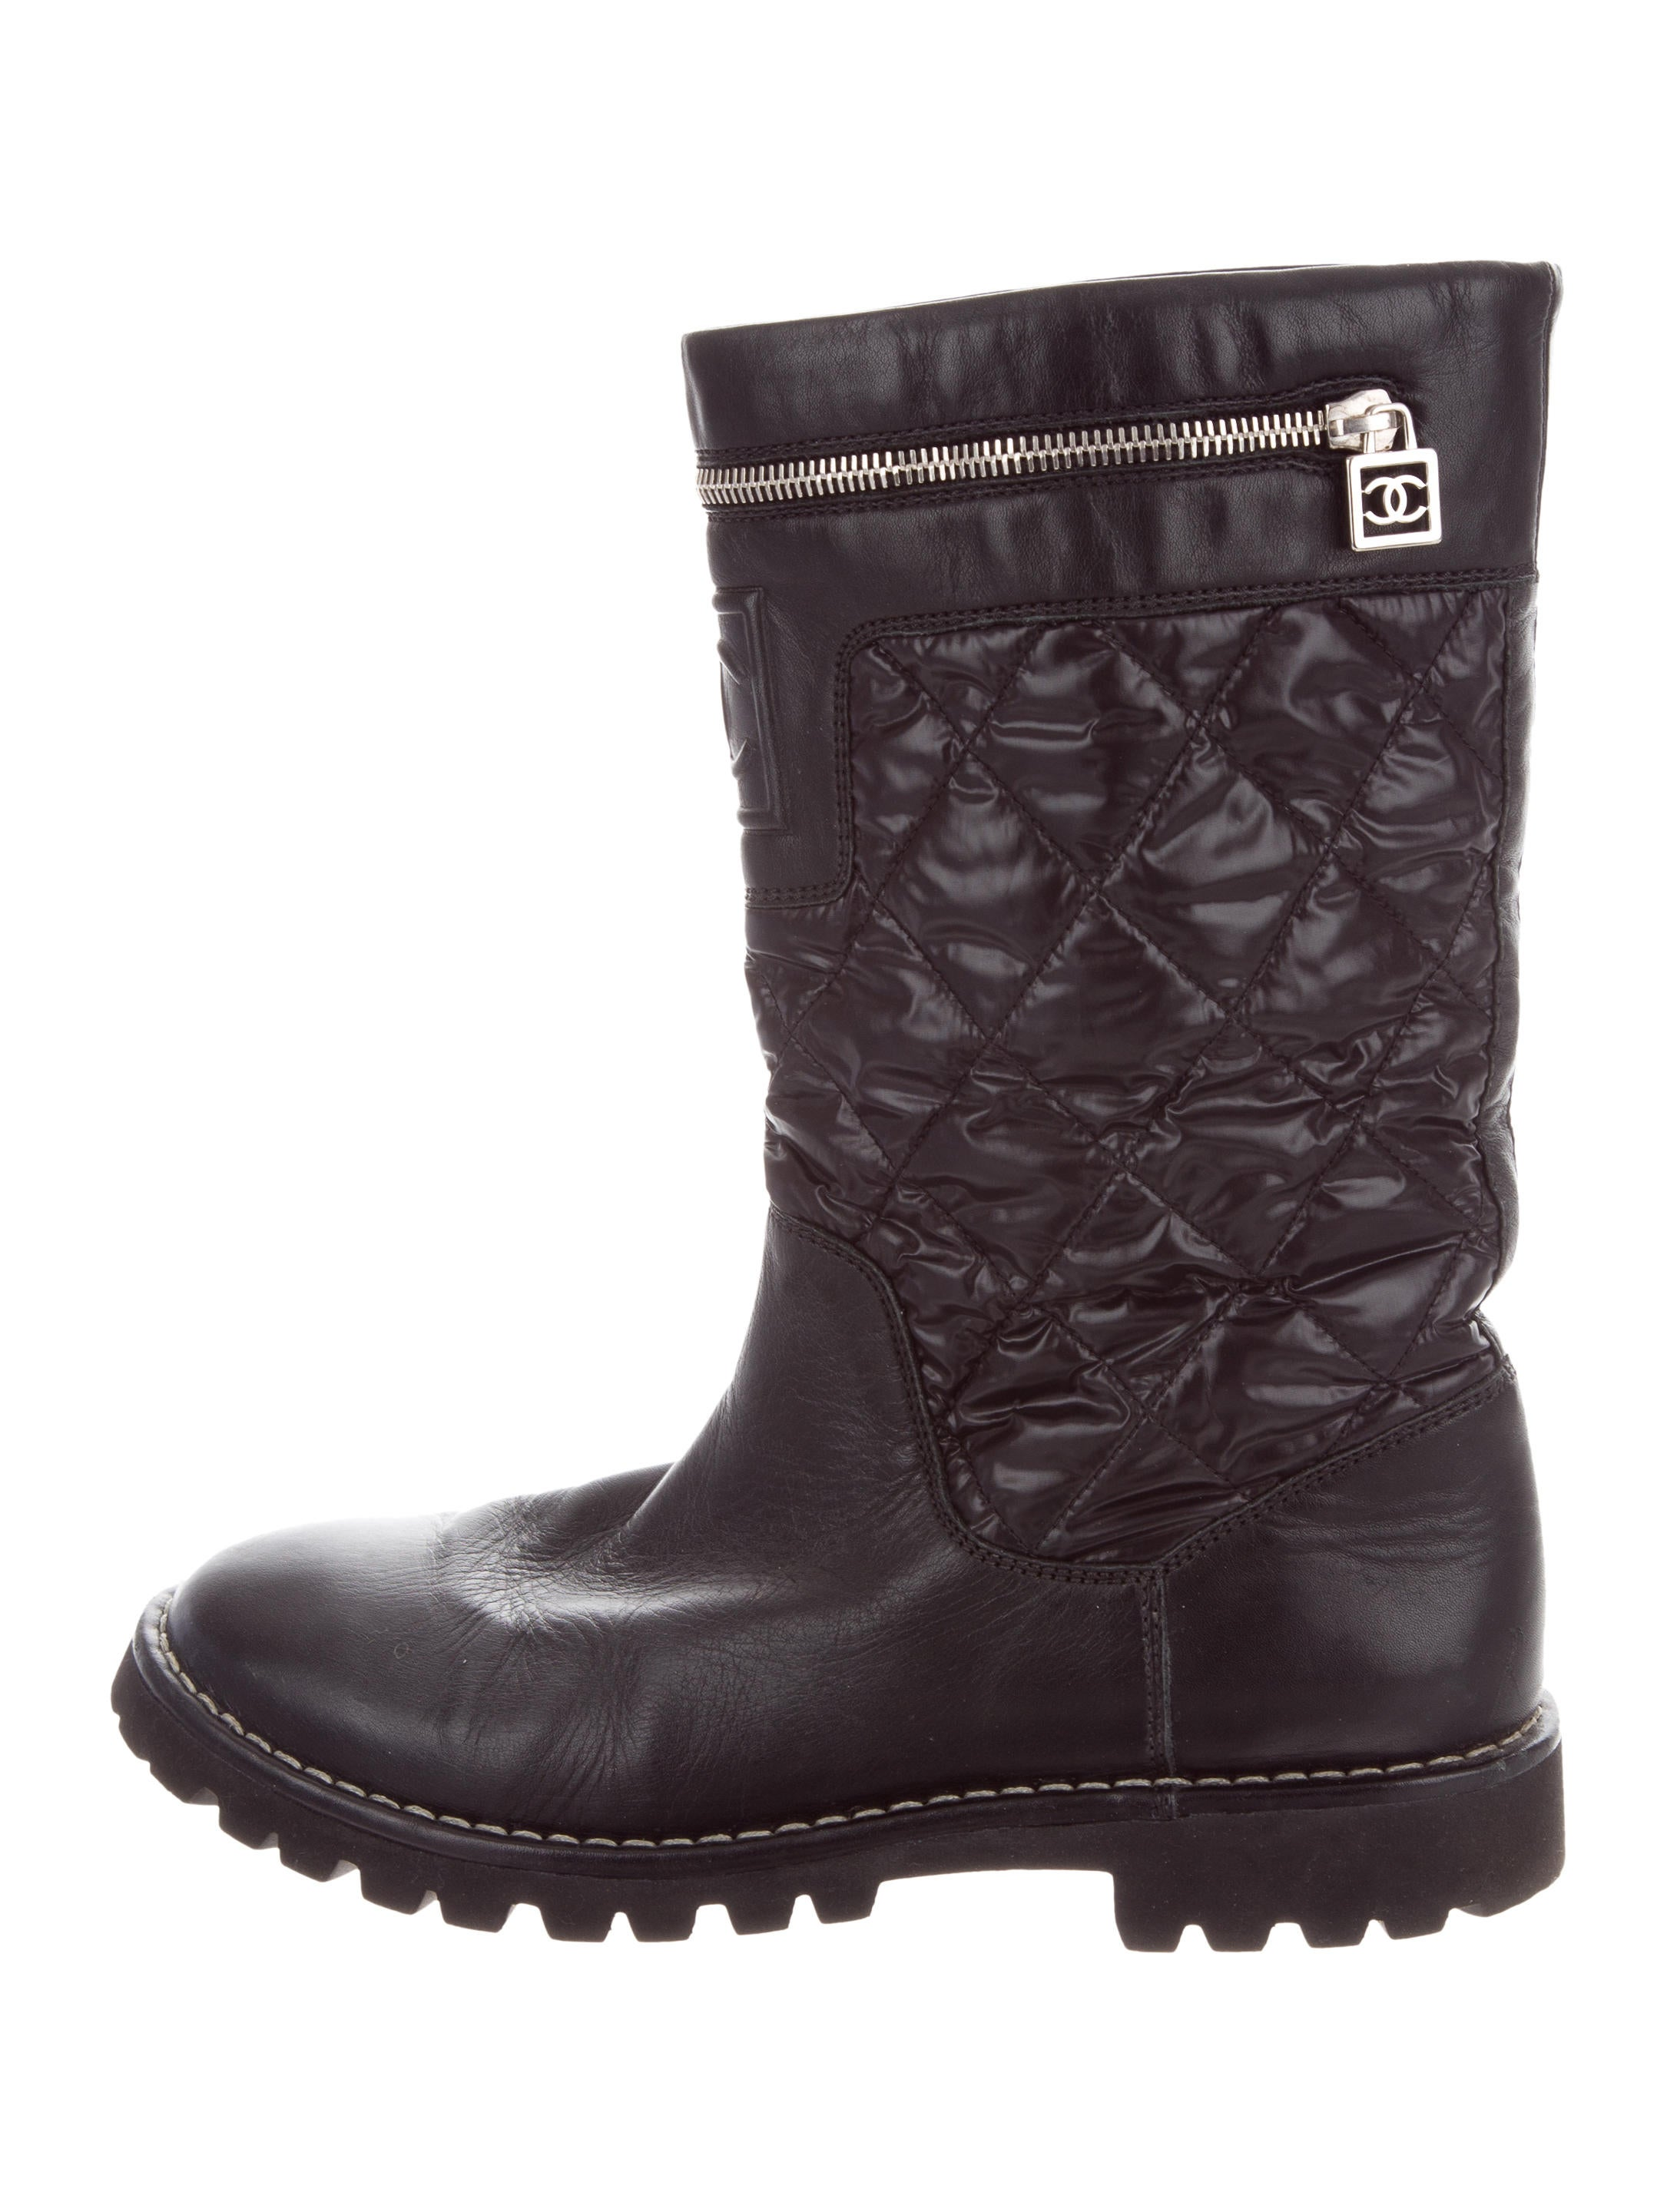 Chanel Quilted Biker Boots - Shoes - CHA221982   The RealReal : quilted biker boots - Adamdwight.com